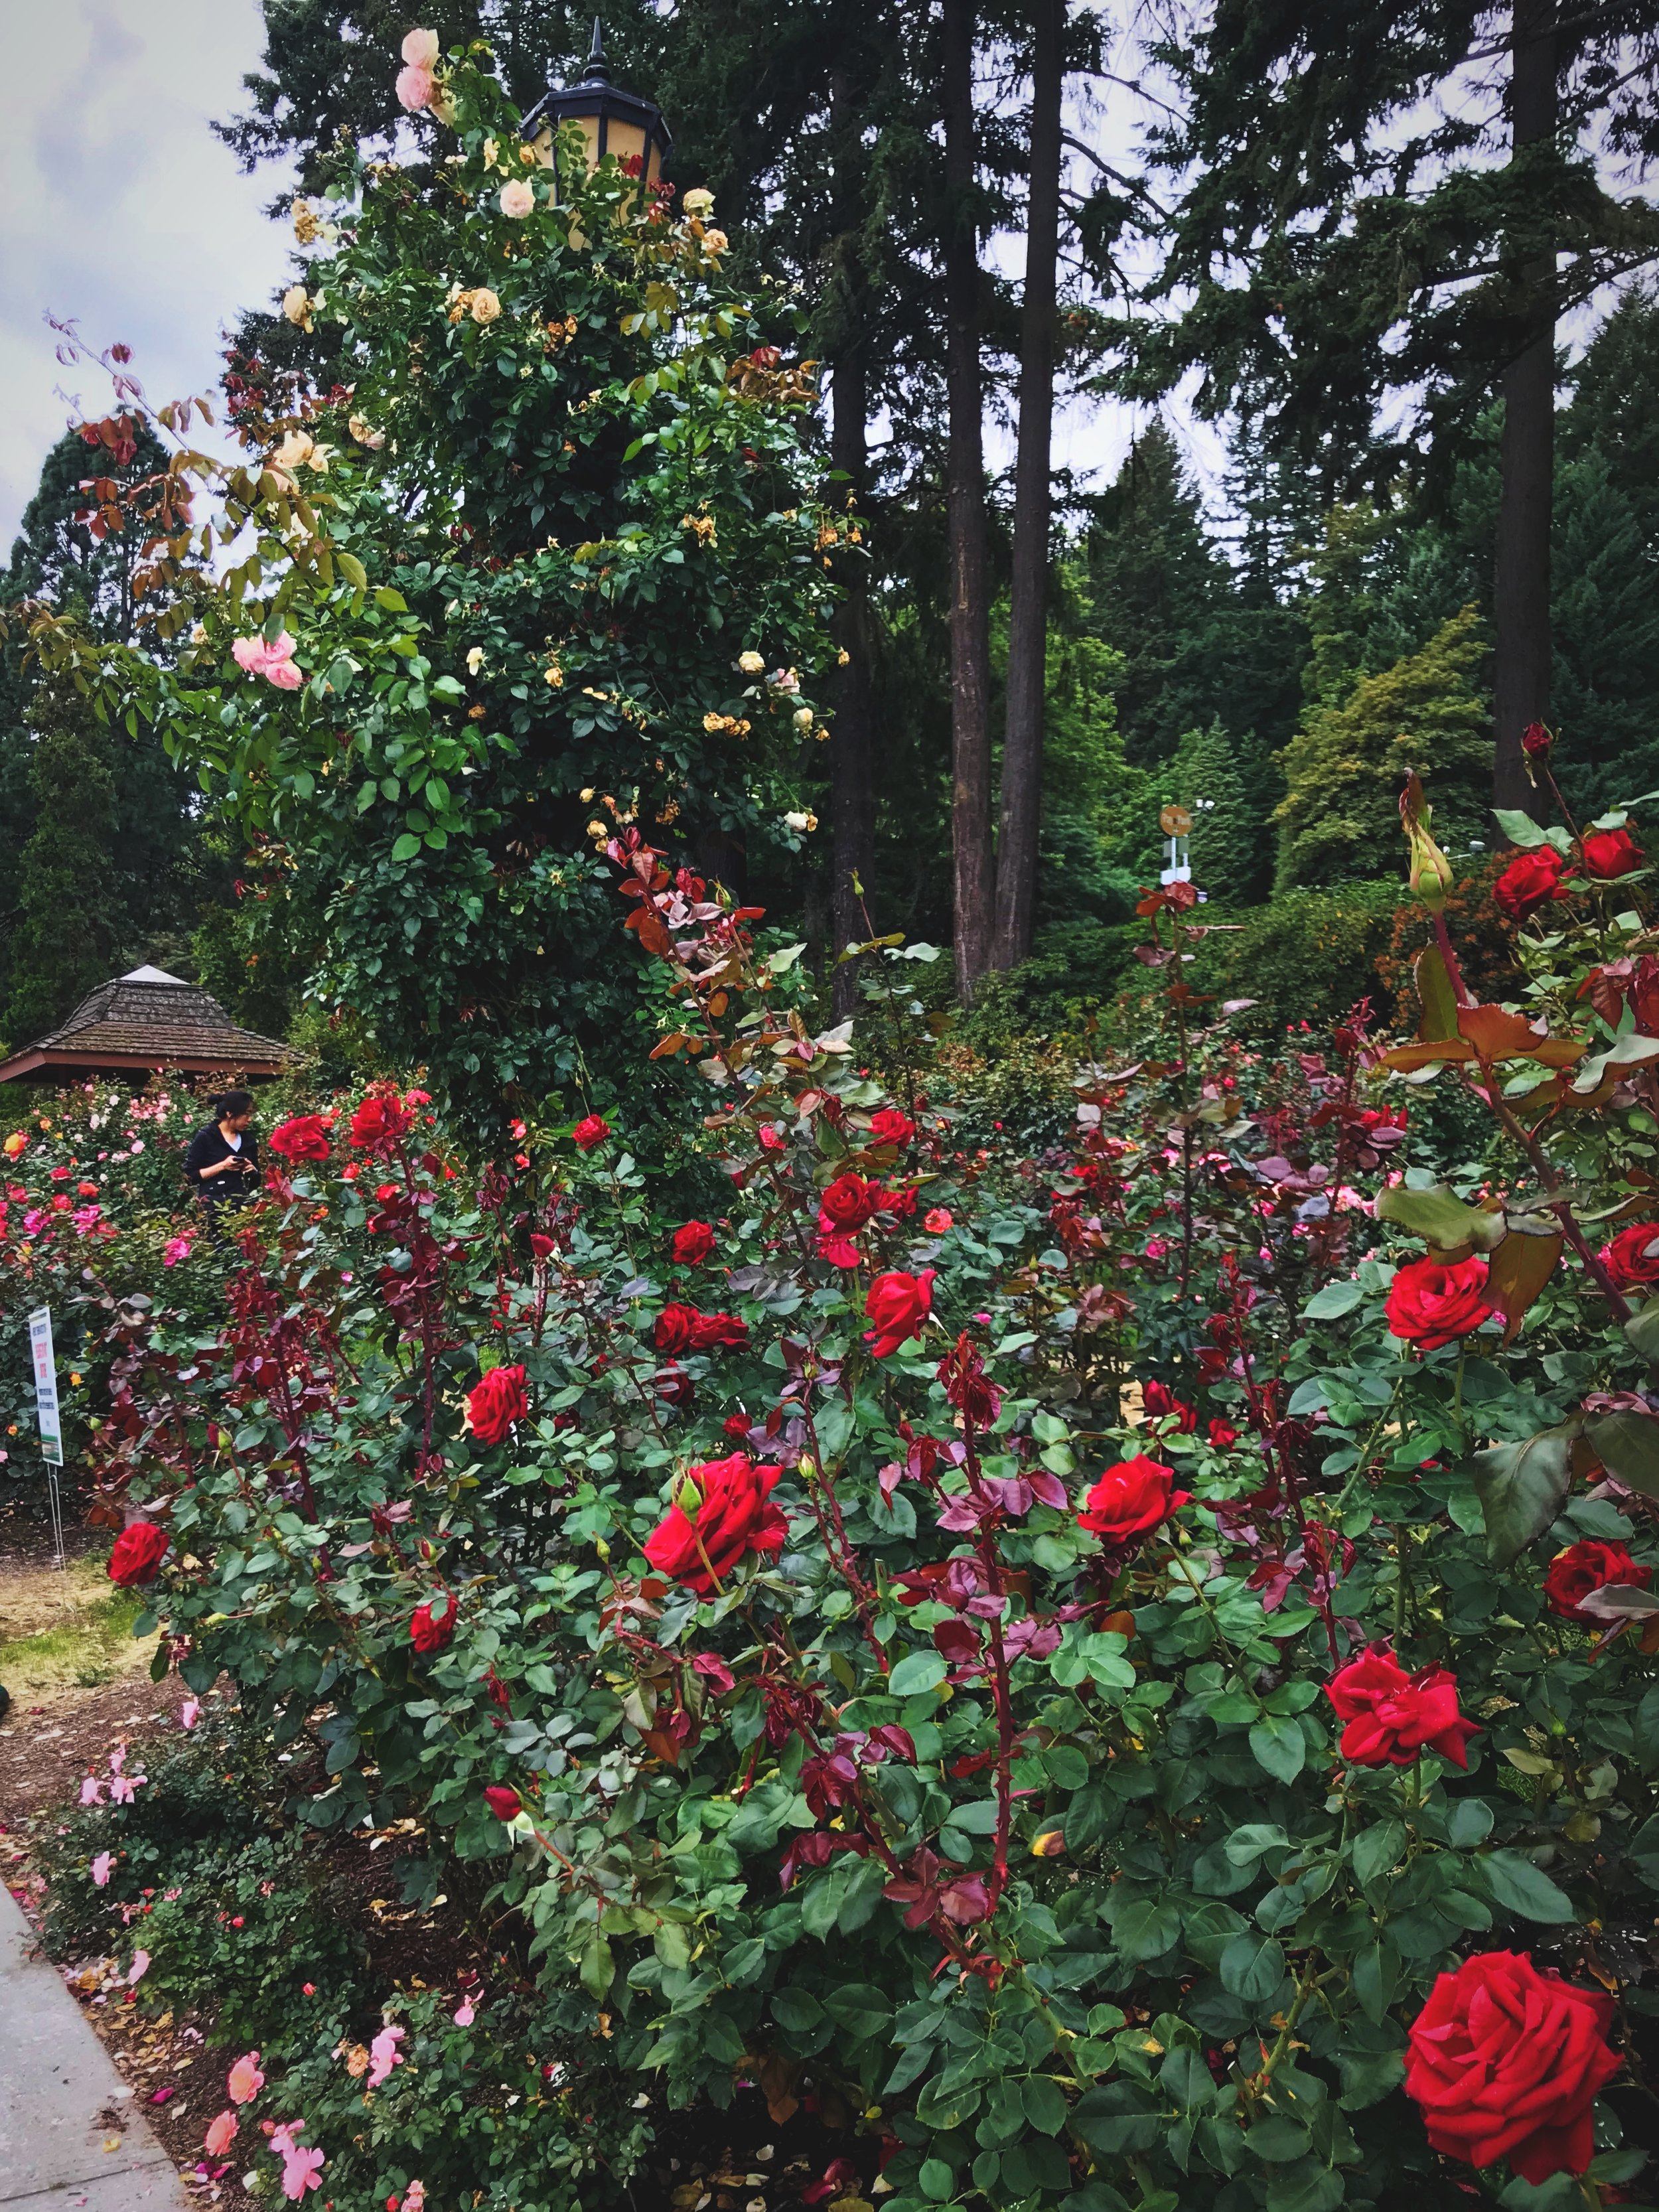 There are so many varieties of beautiful roses at Portland International Rose Test Garden.